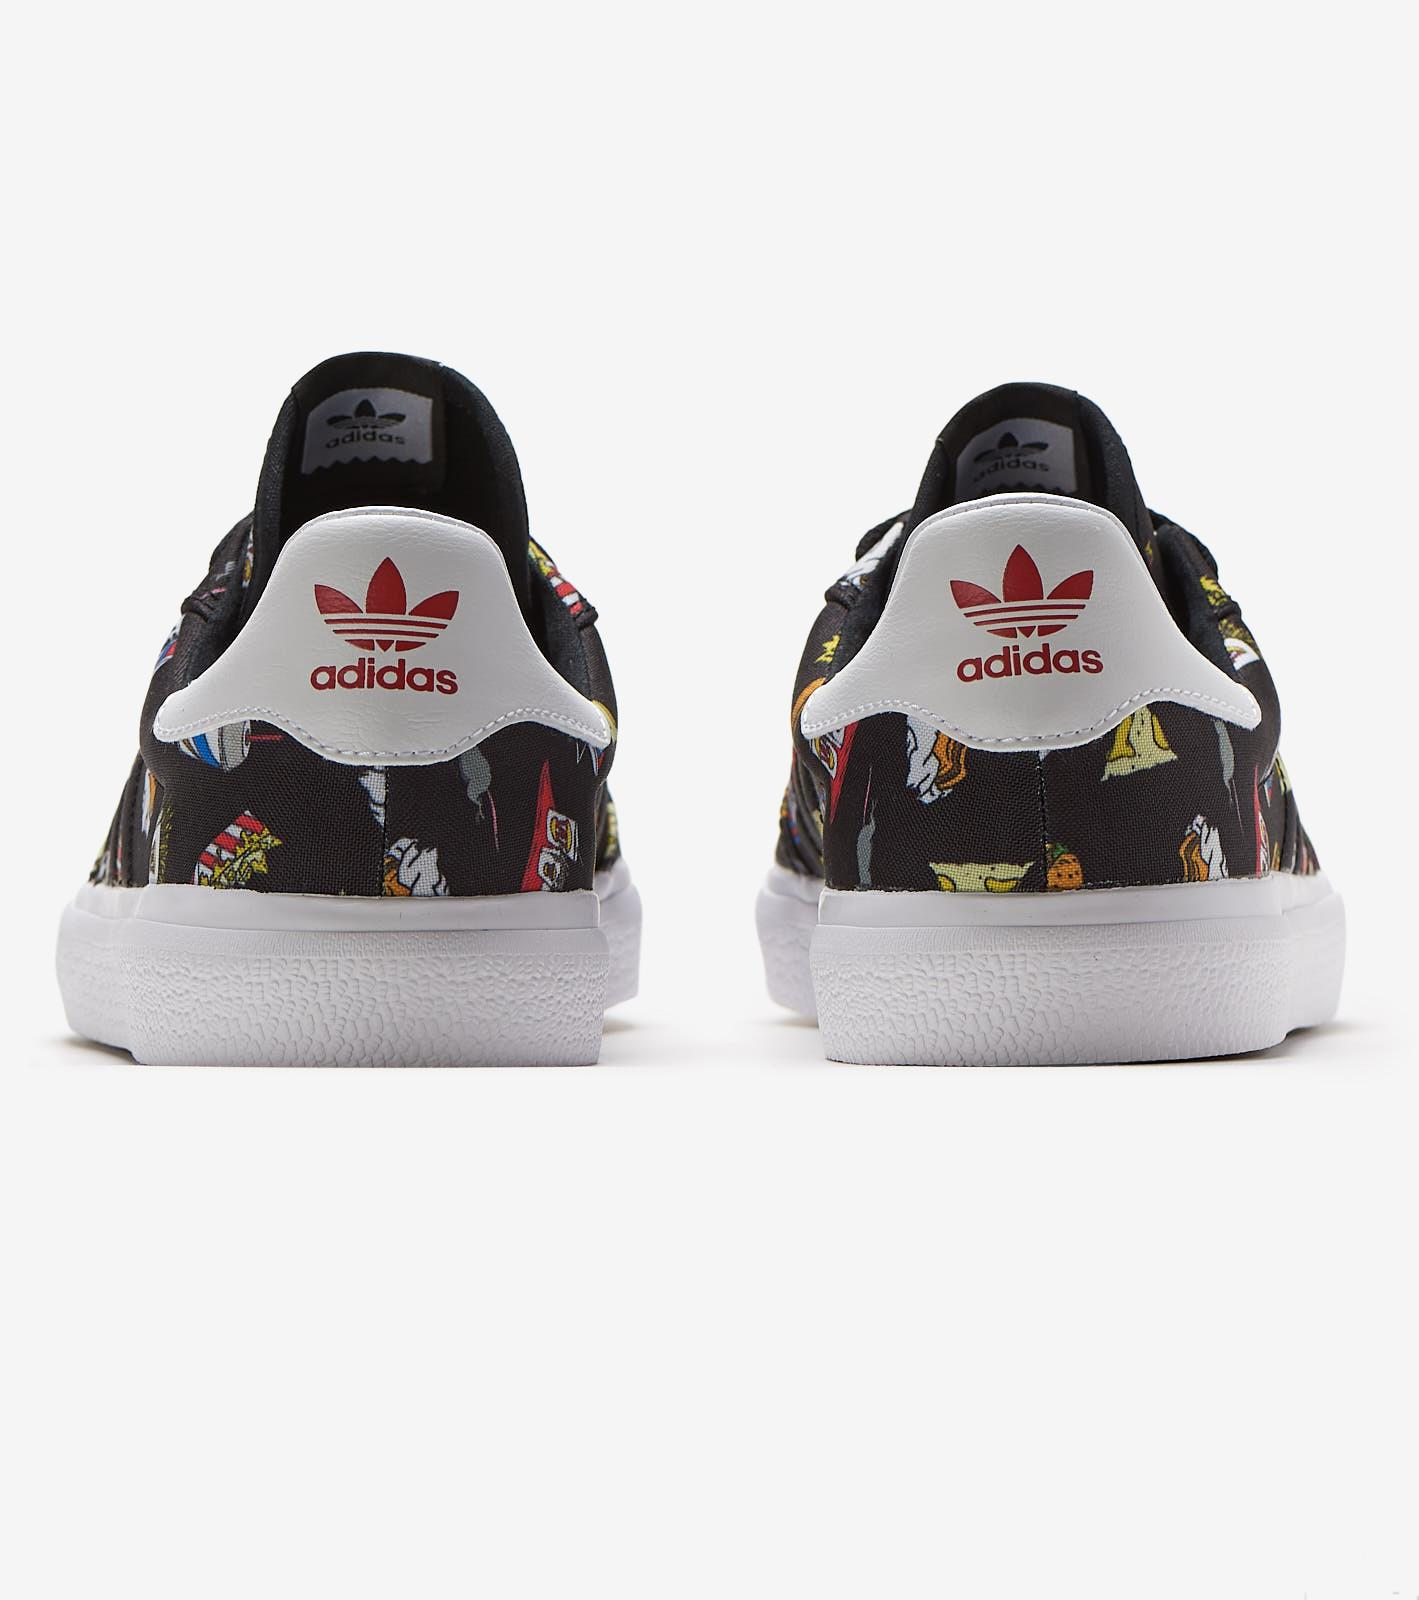 best website e6c40 47517 Adidas - Black 3mc X Beavis And Butthead Shoes for Men - Lyst. View  fullscreen